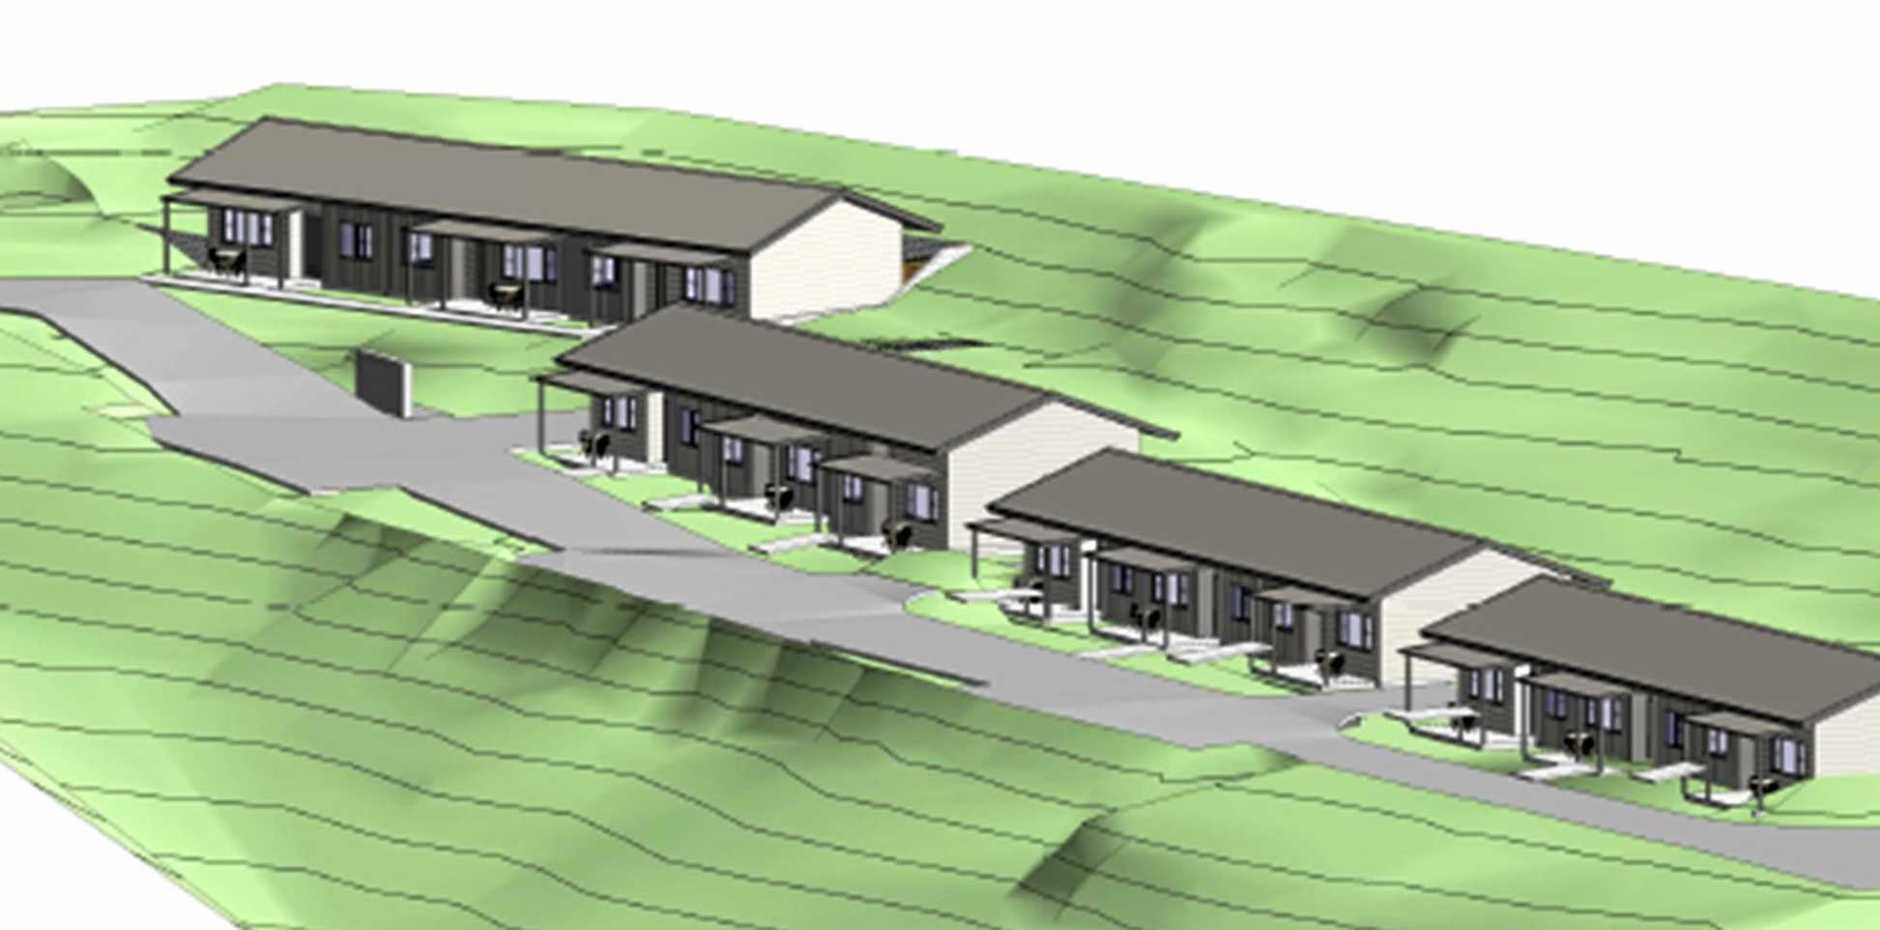 Caroona Goonellabah has lodged a development application with Lismore City Council for 12 new independent living units.